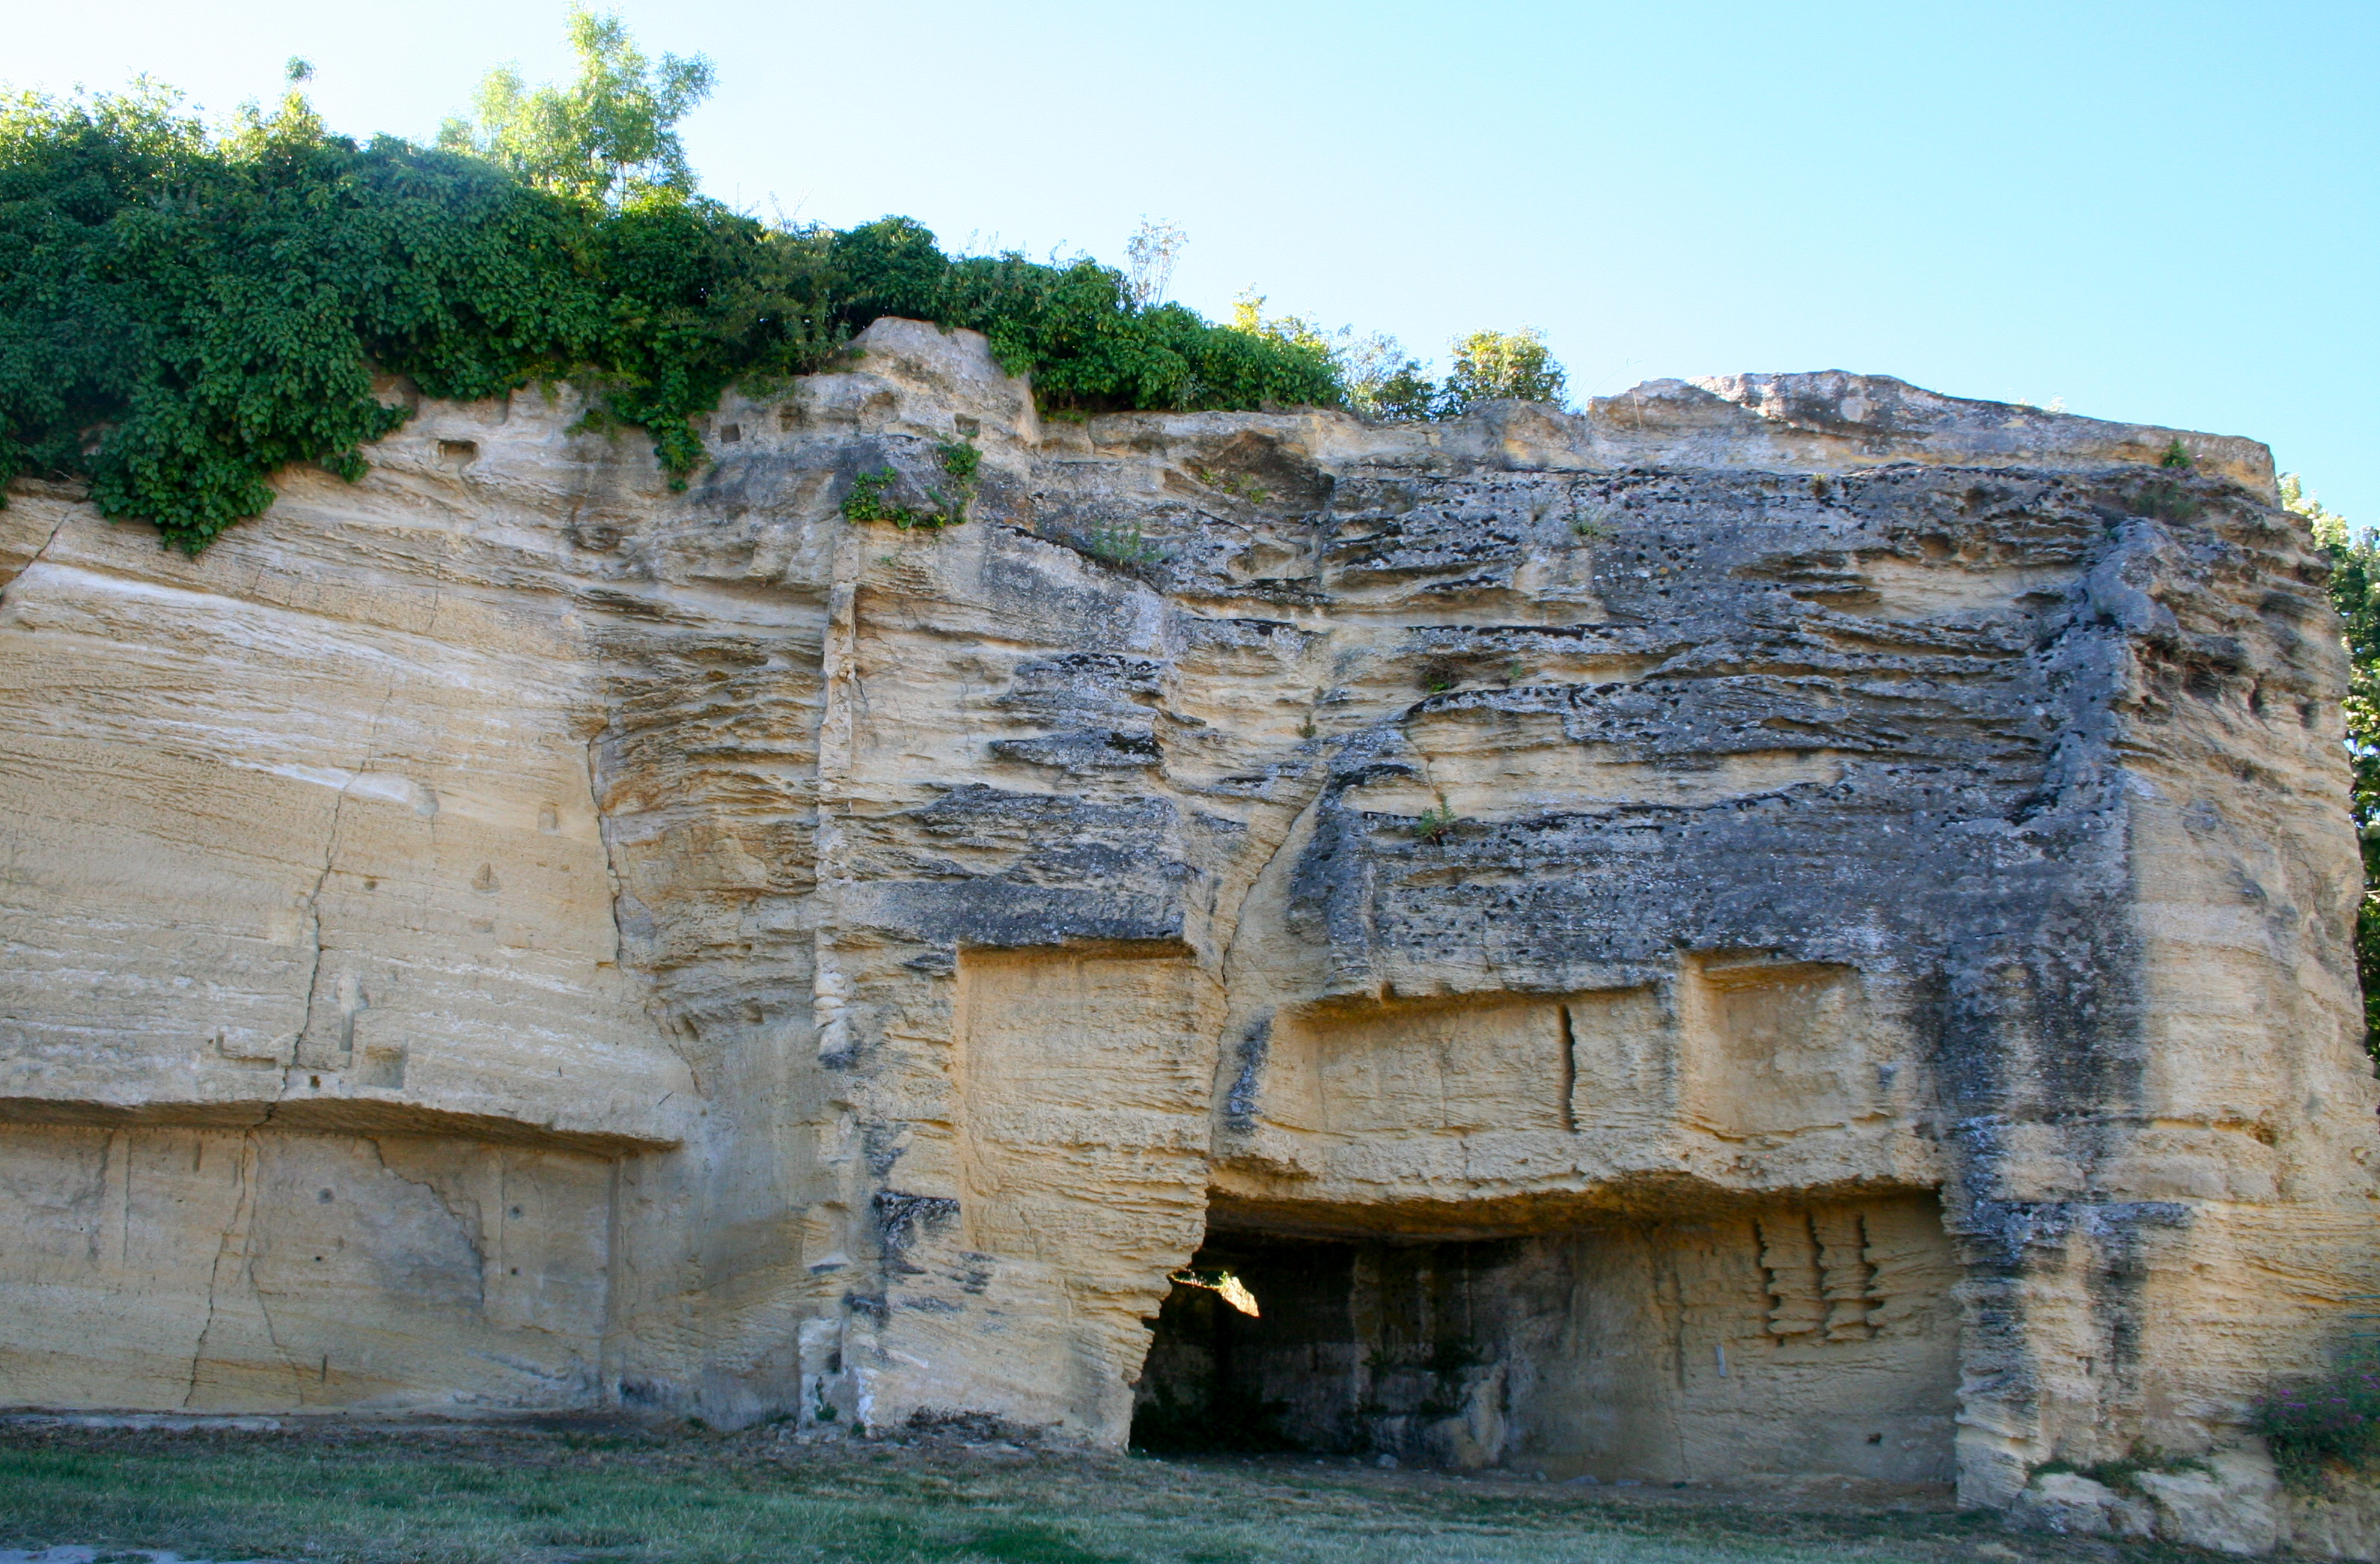 File:Sandstone caves in Cubzac.jpg - Wikimedia Commons